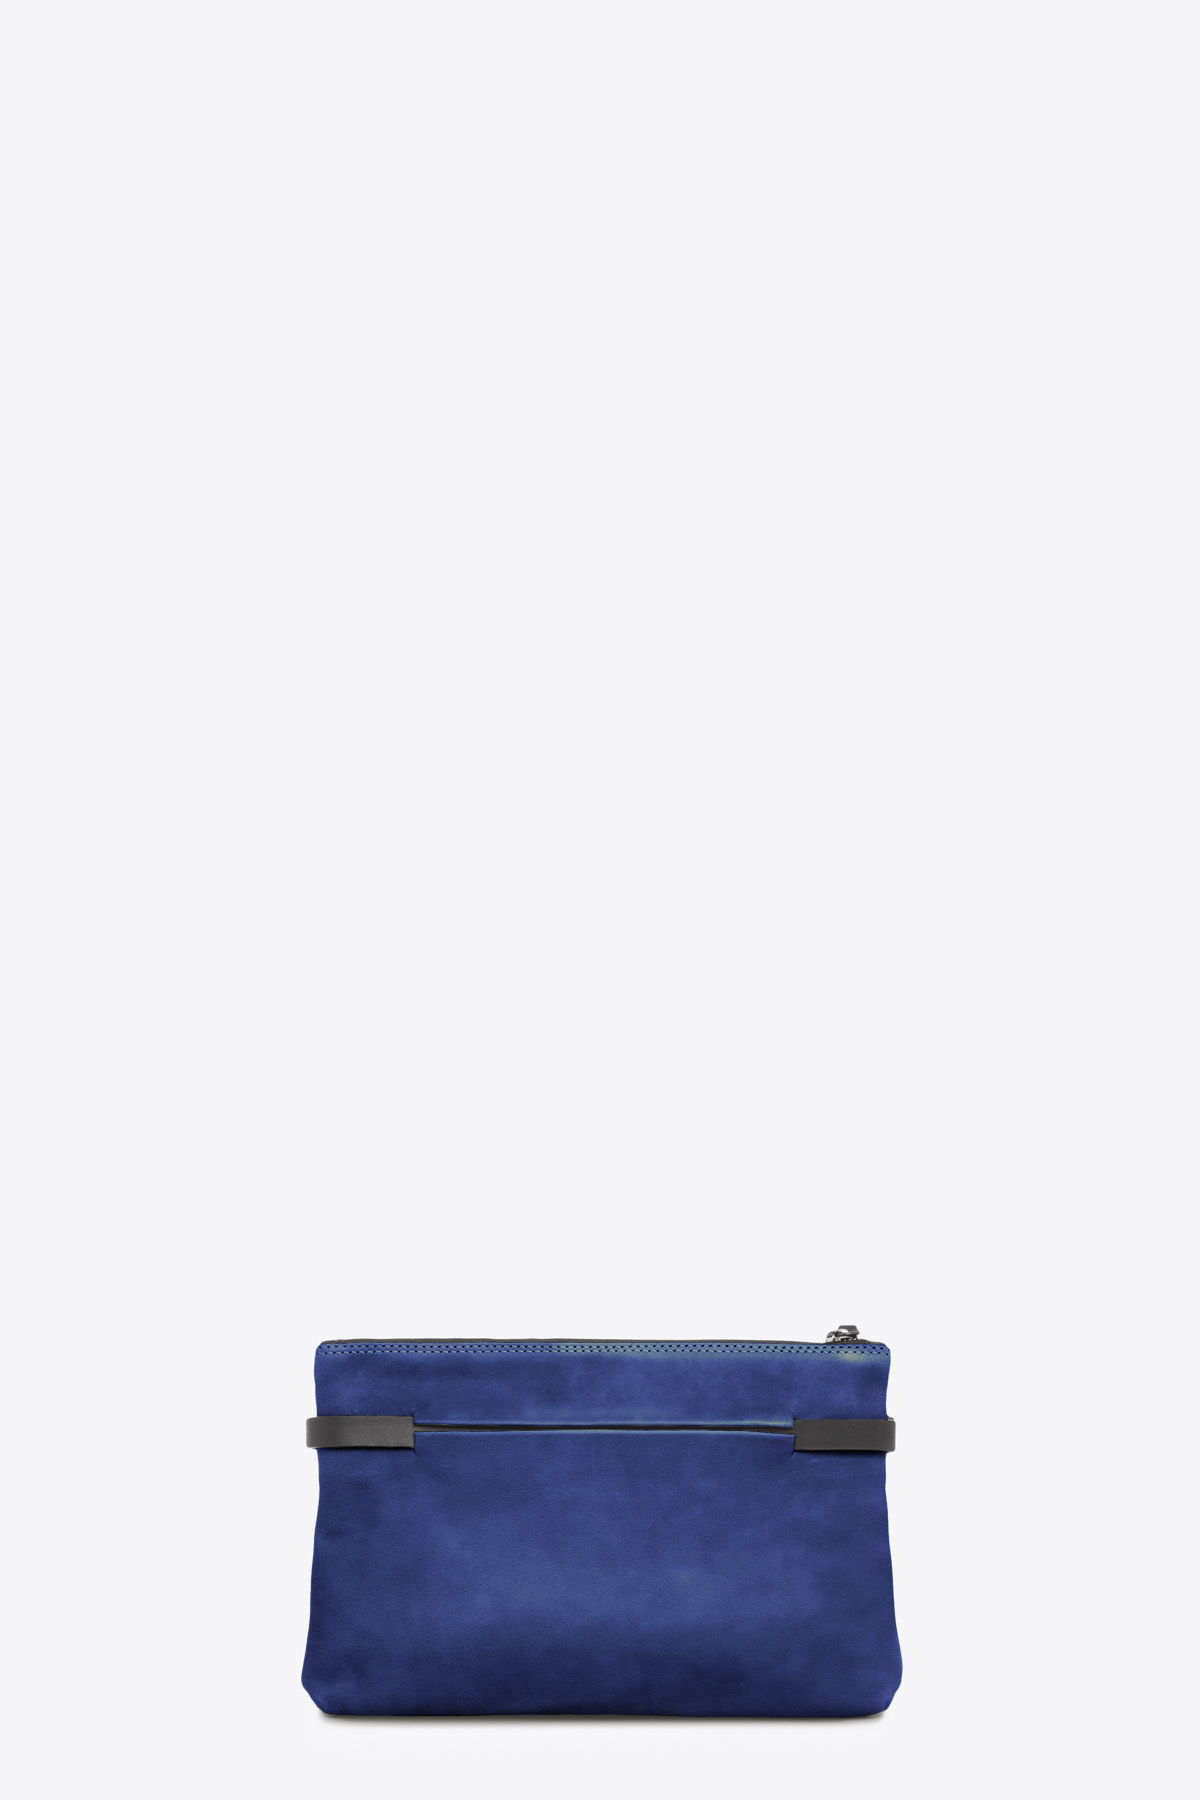 dclr004s-tapeclutch-a20-royalblue-back